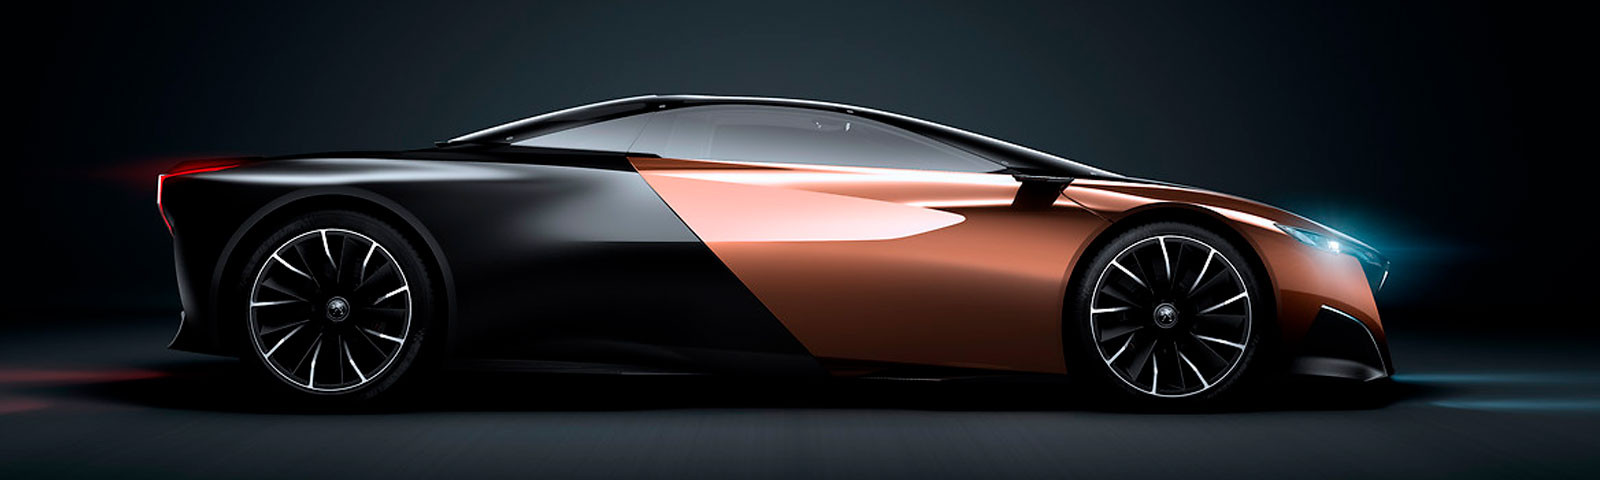 Concept cars PEUGEOT, laboratorio de ideas